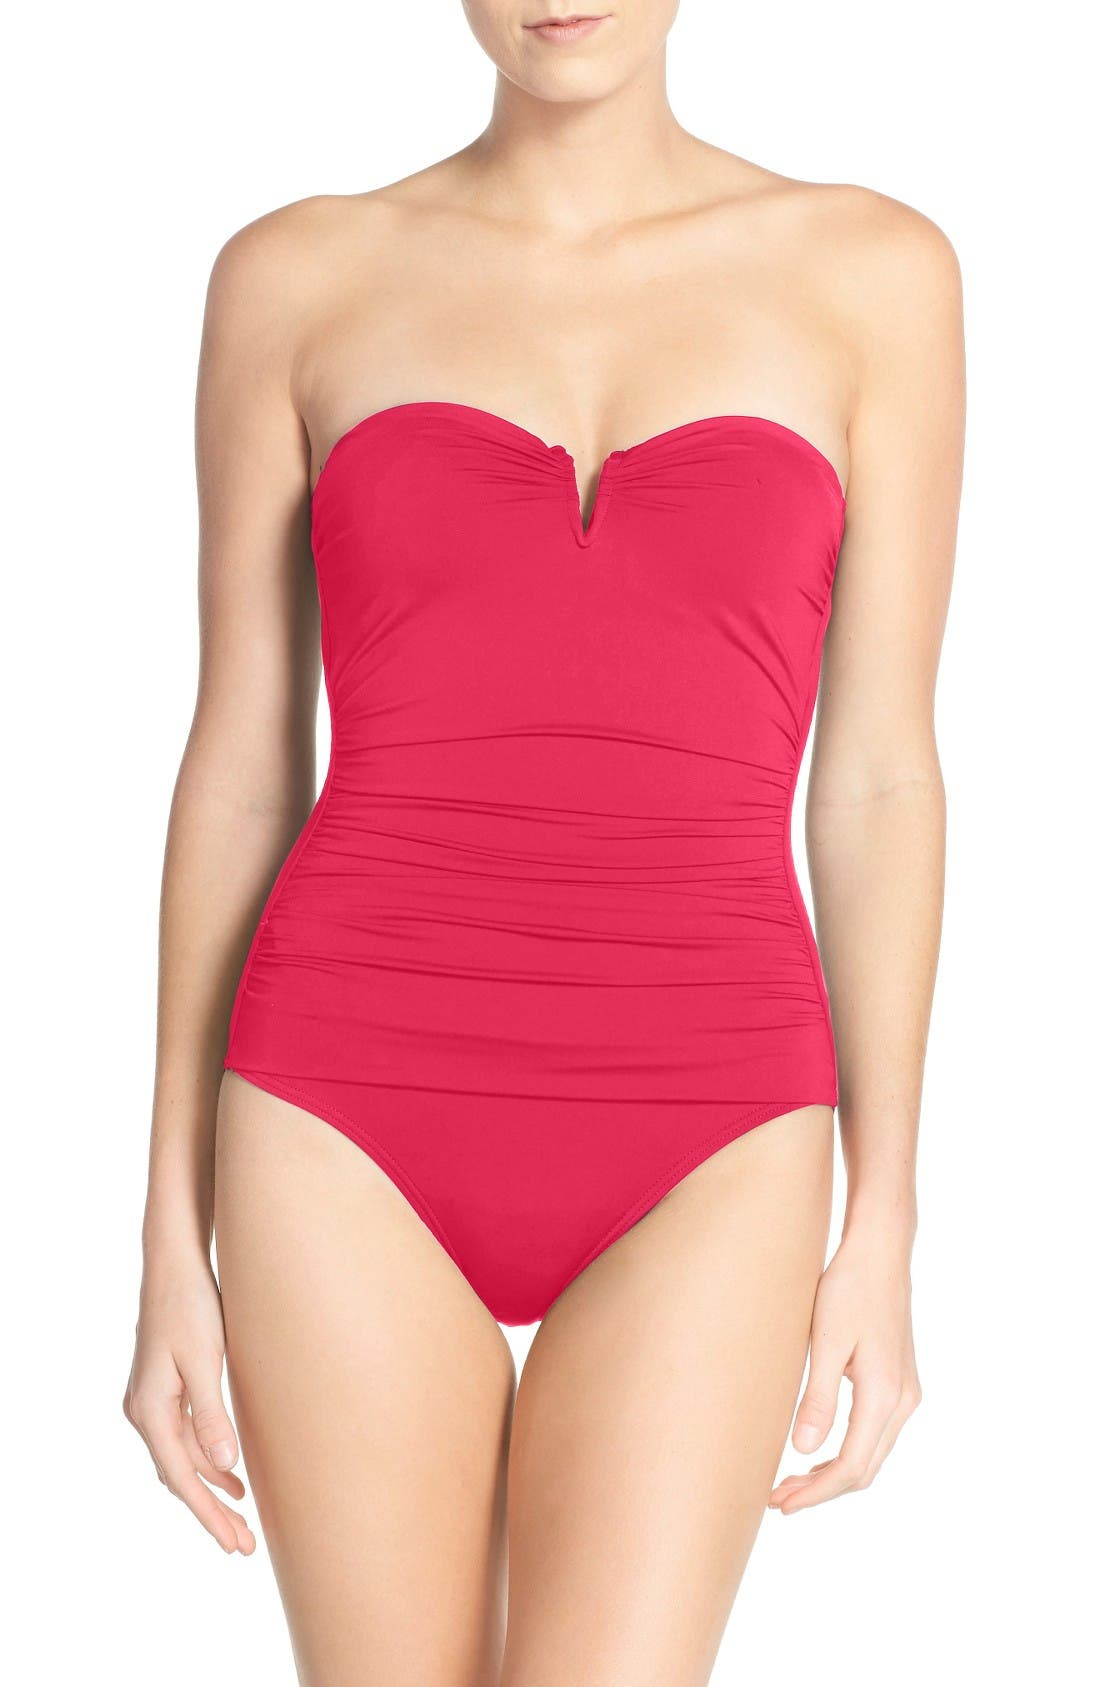 Alternate Image 1 Selected - Tommy Bahama 'Pearl' Convertible One-Piece Swimsuit